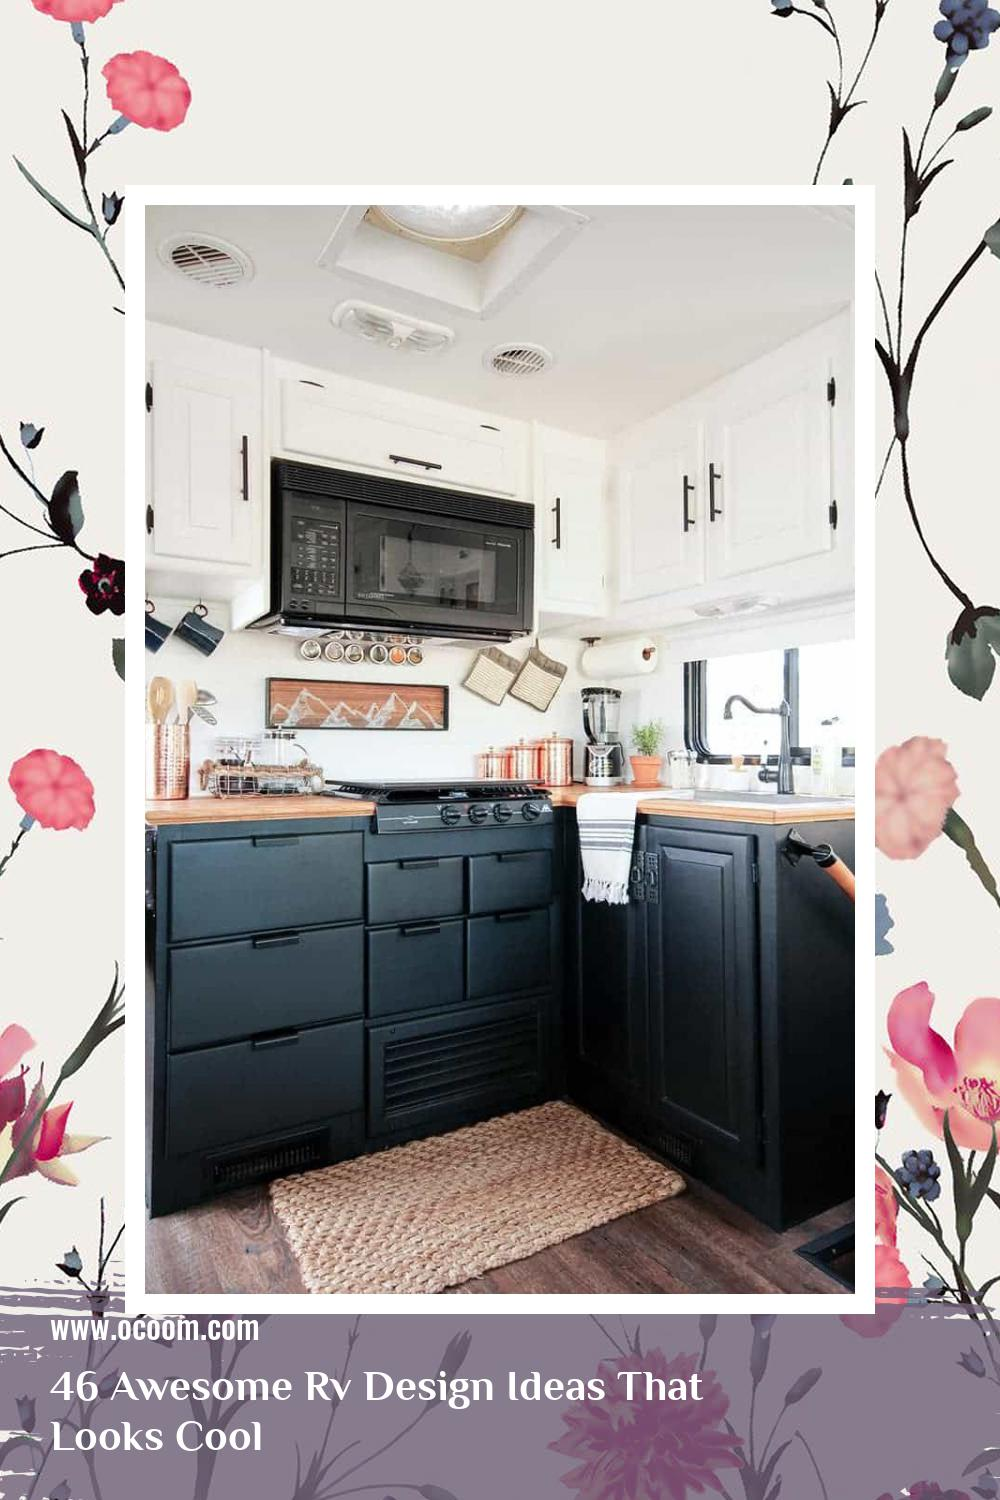 46 Awesome Rv Design Ideas That Looks Cool 25